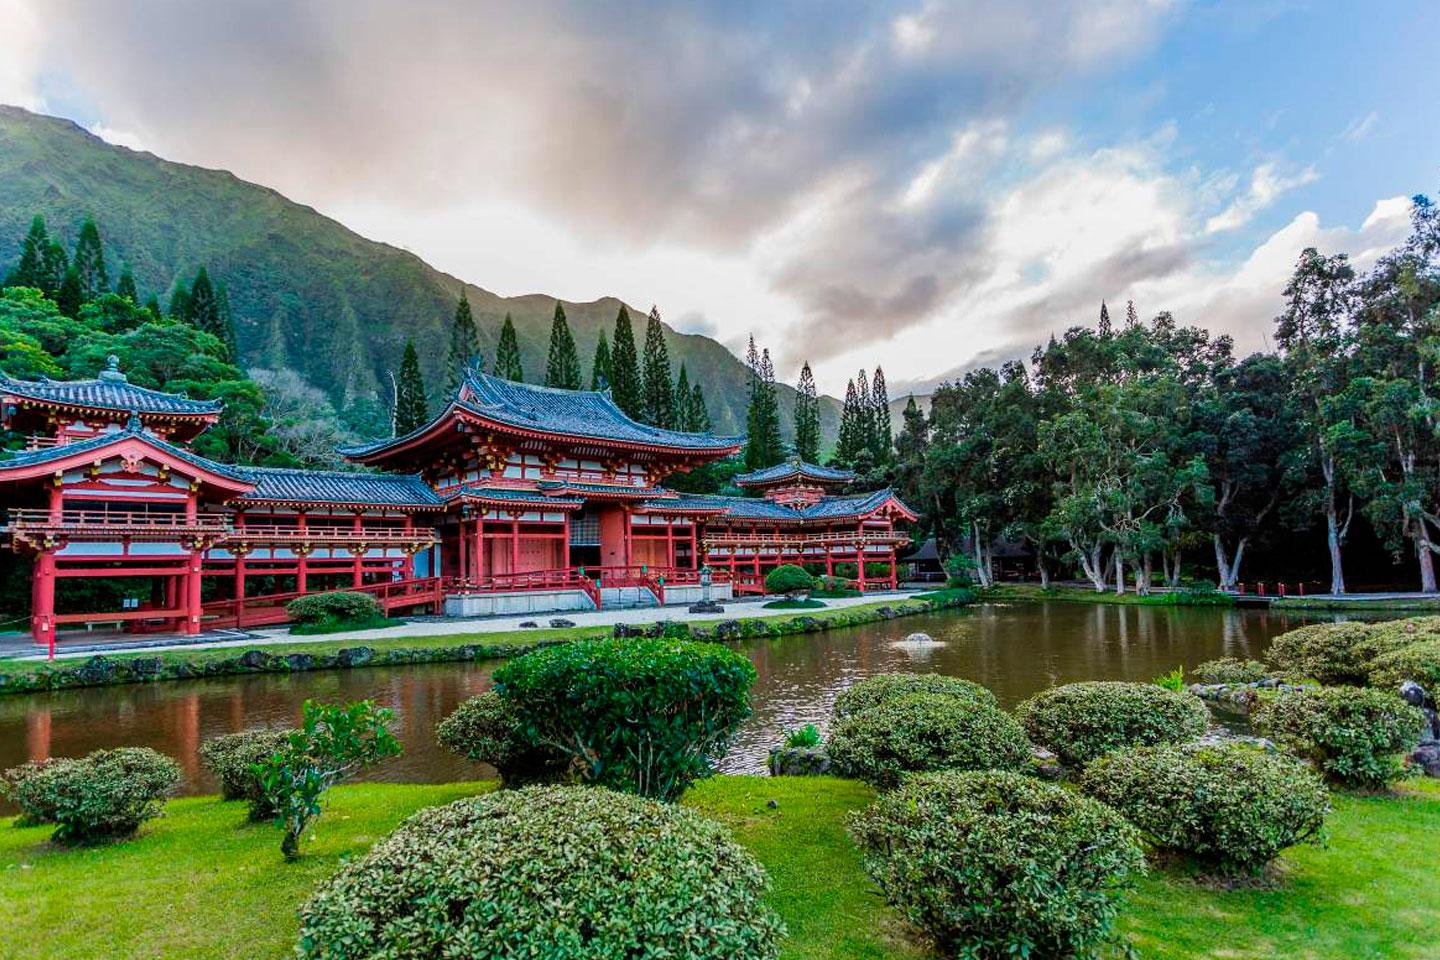 trips to discover the oceanian and asian architecture